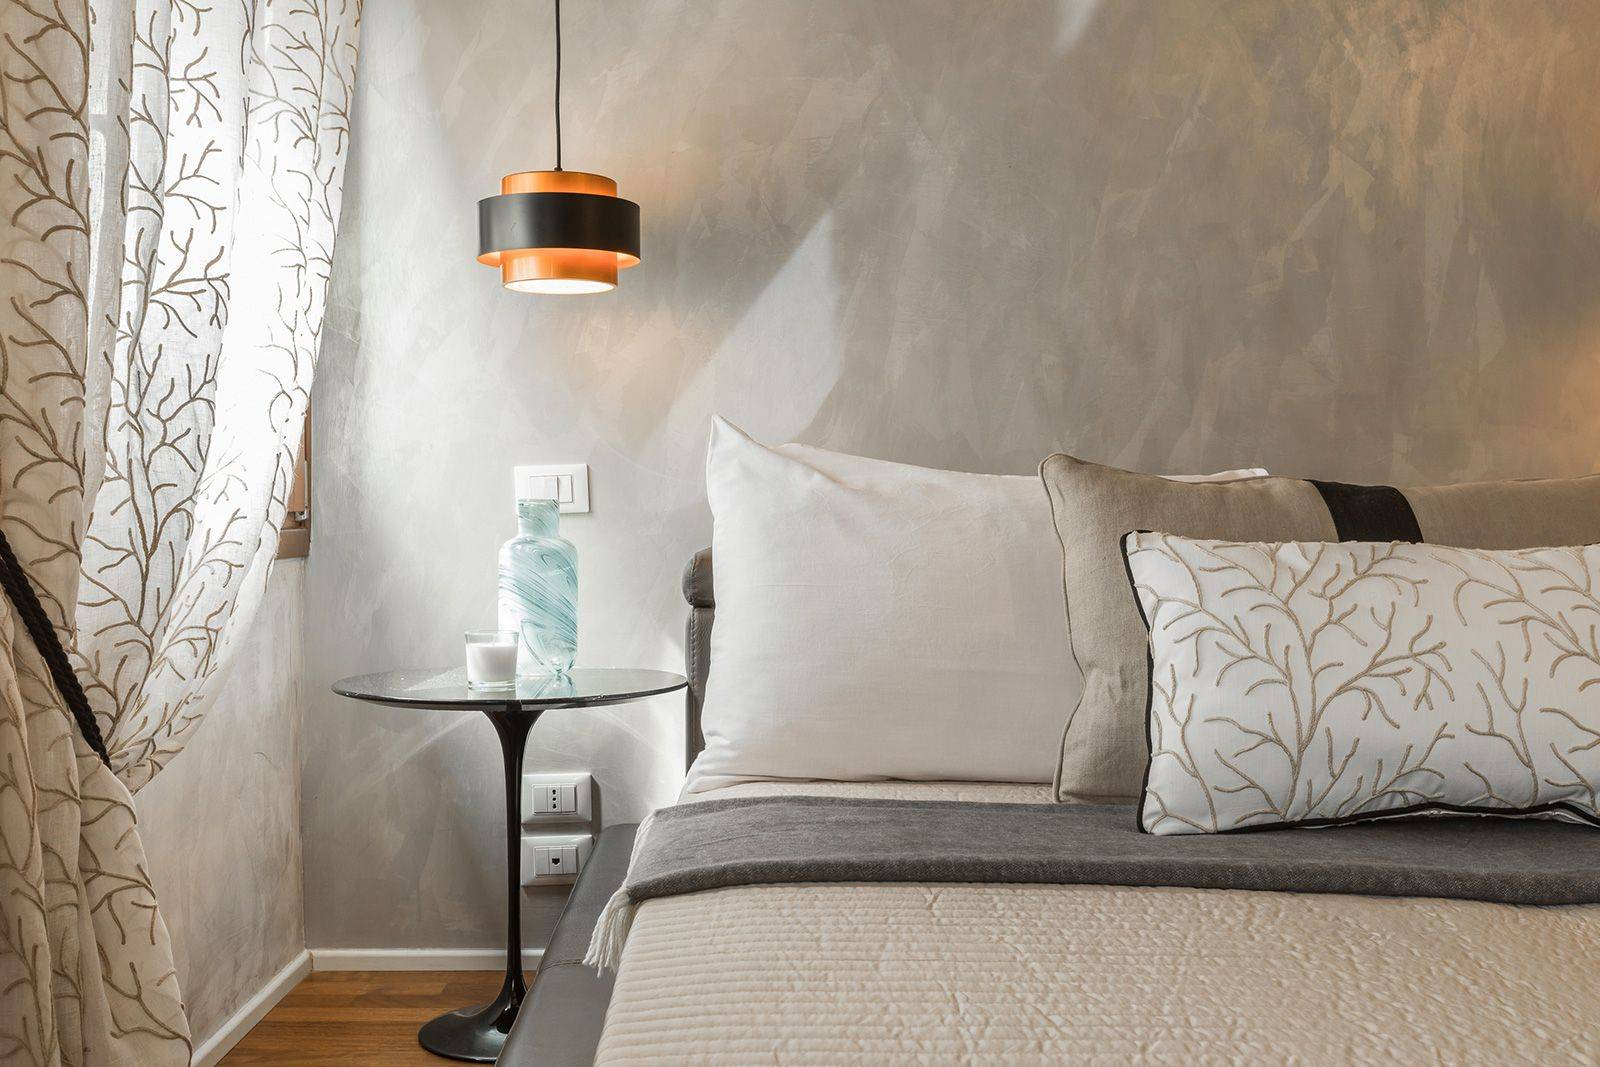 with nice fabrics and stucco Veneziano walls